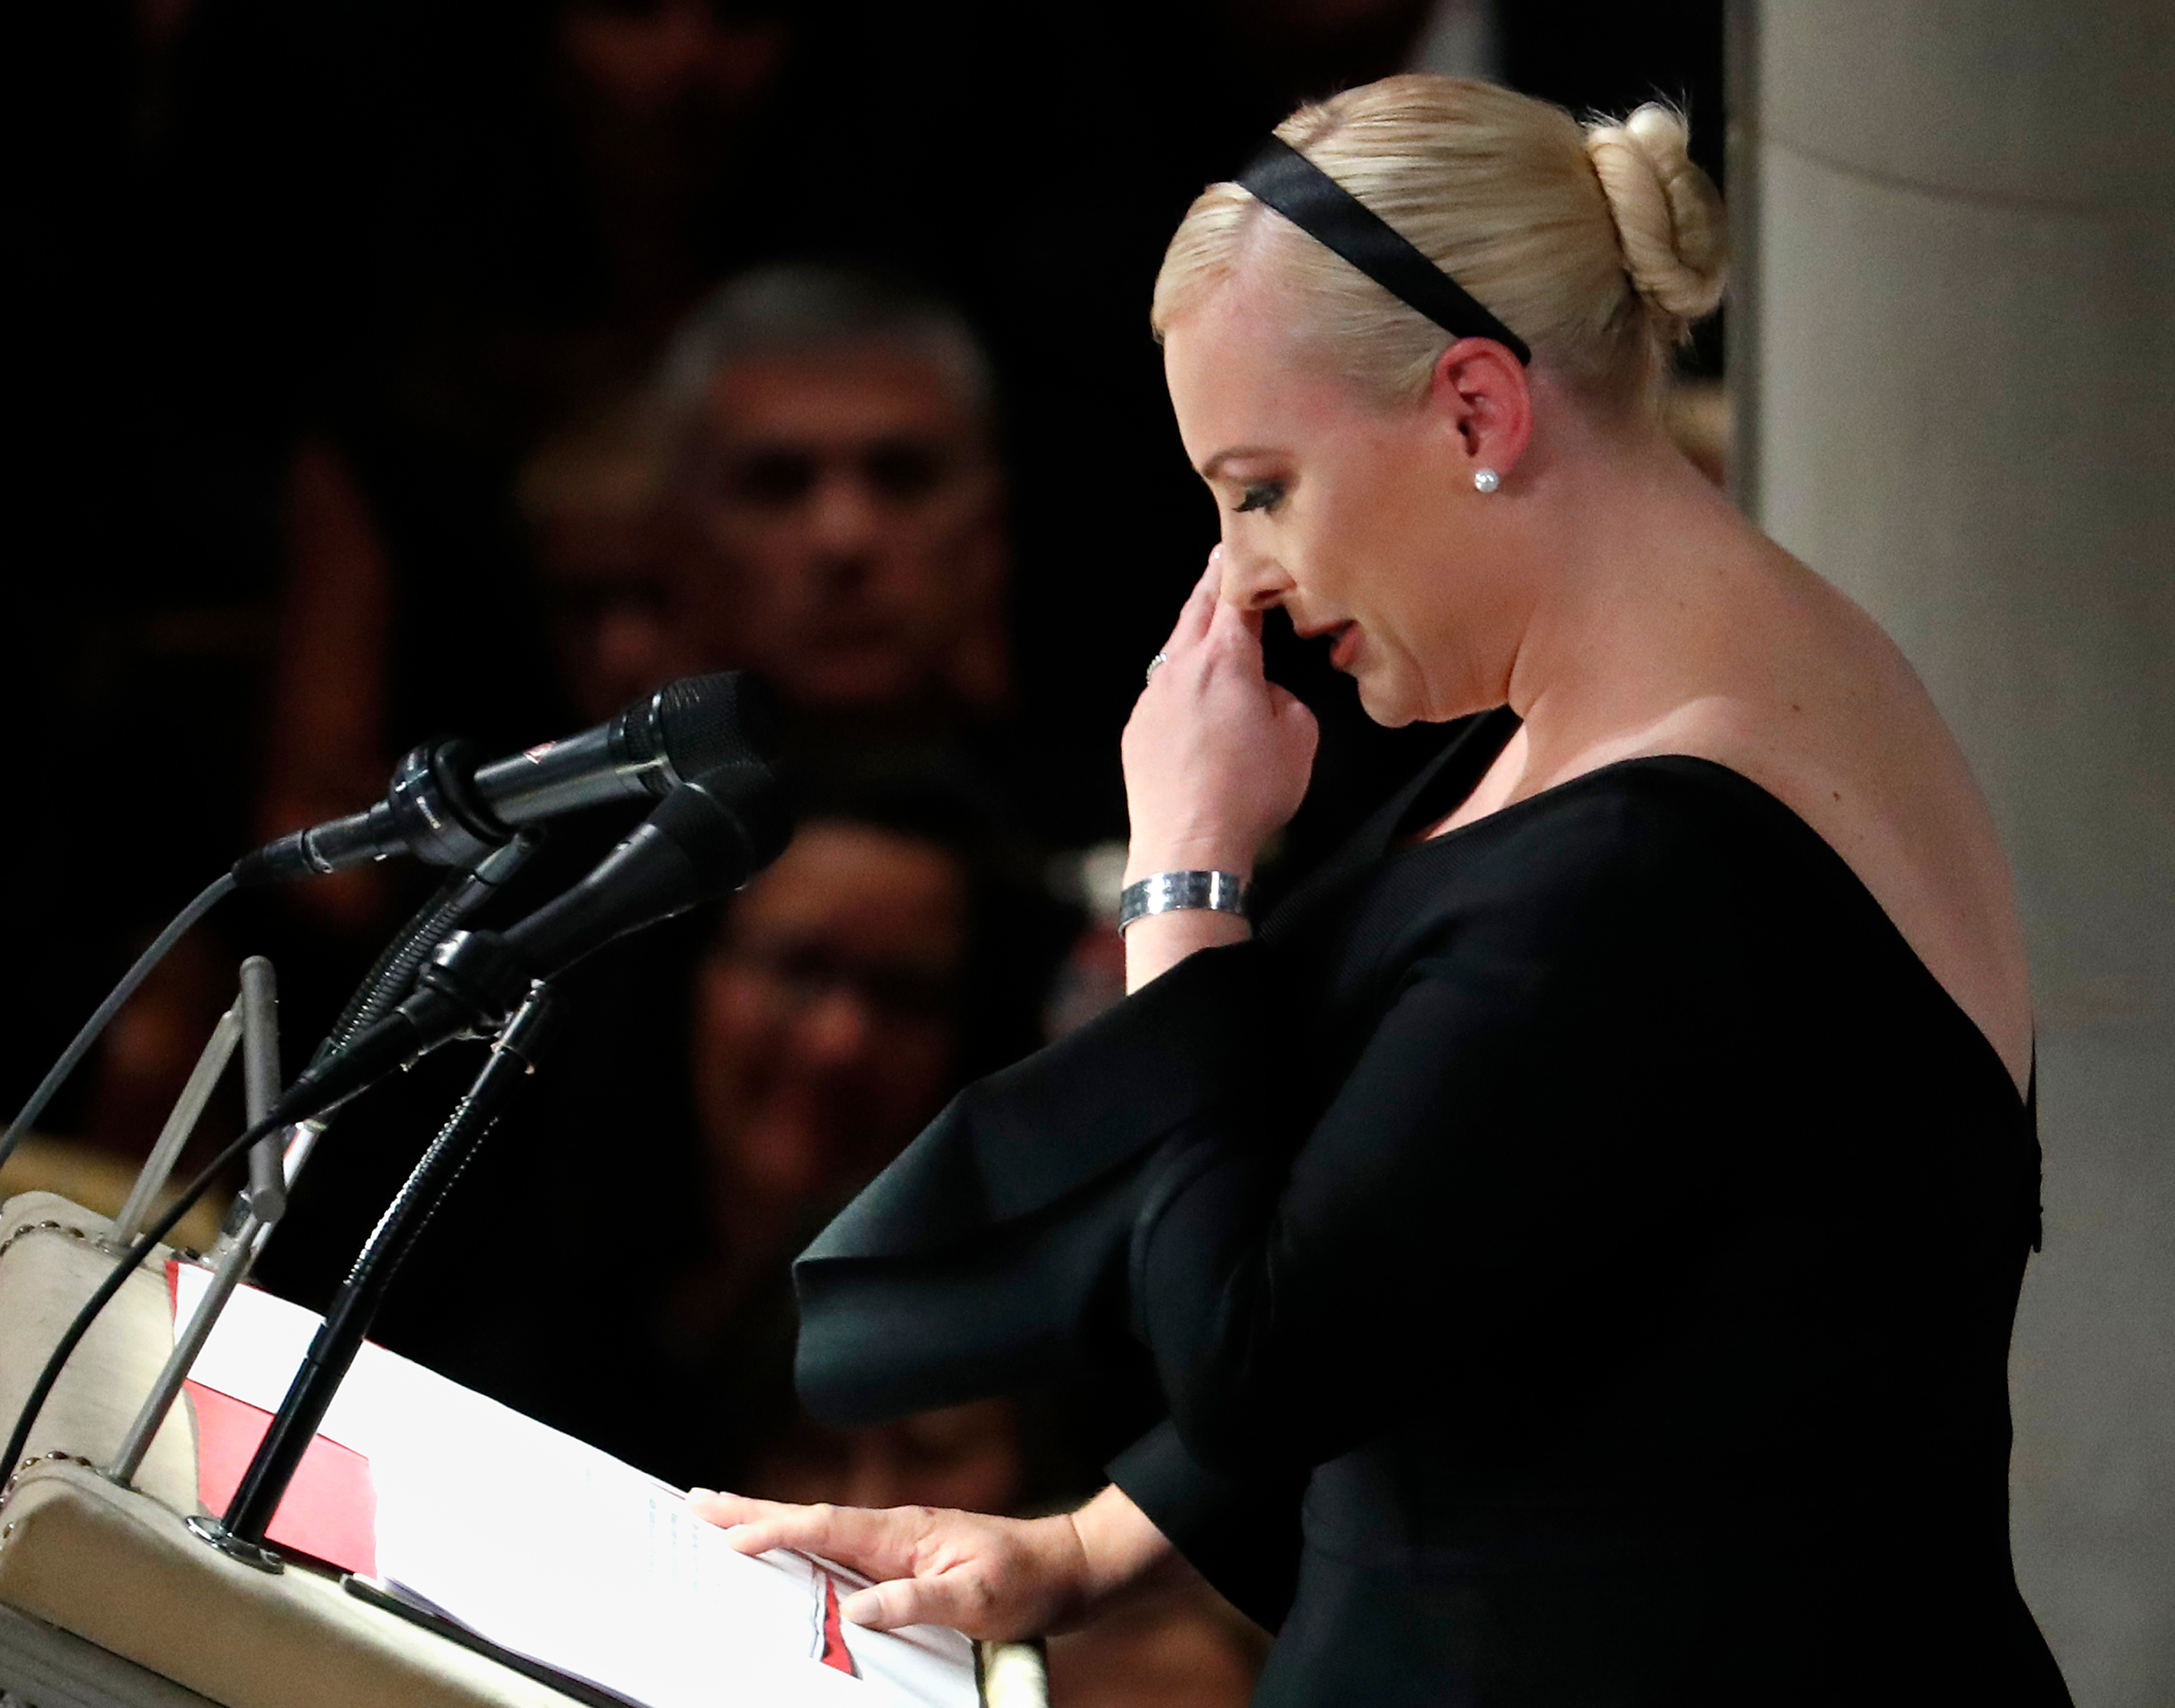 Meghan McCain speaks at a memorial service for her father, Sen. John McCain, R-Ariz., at Washington Nationals Cathedral in Washington, DC on Sept. 1, 2018.